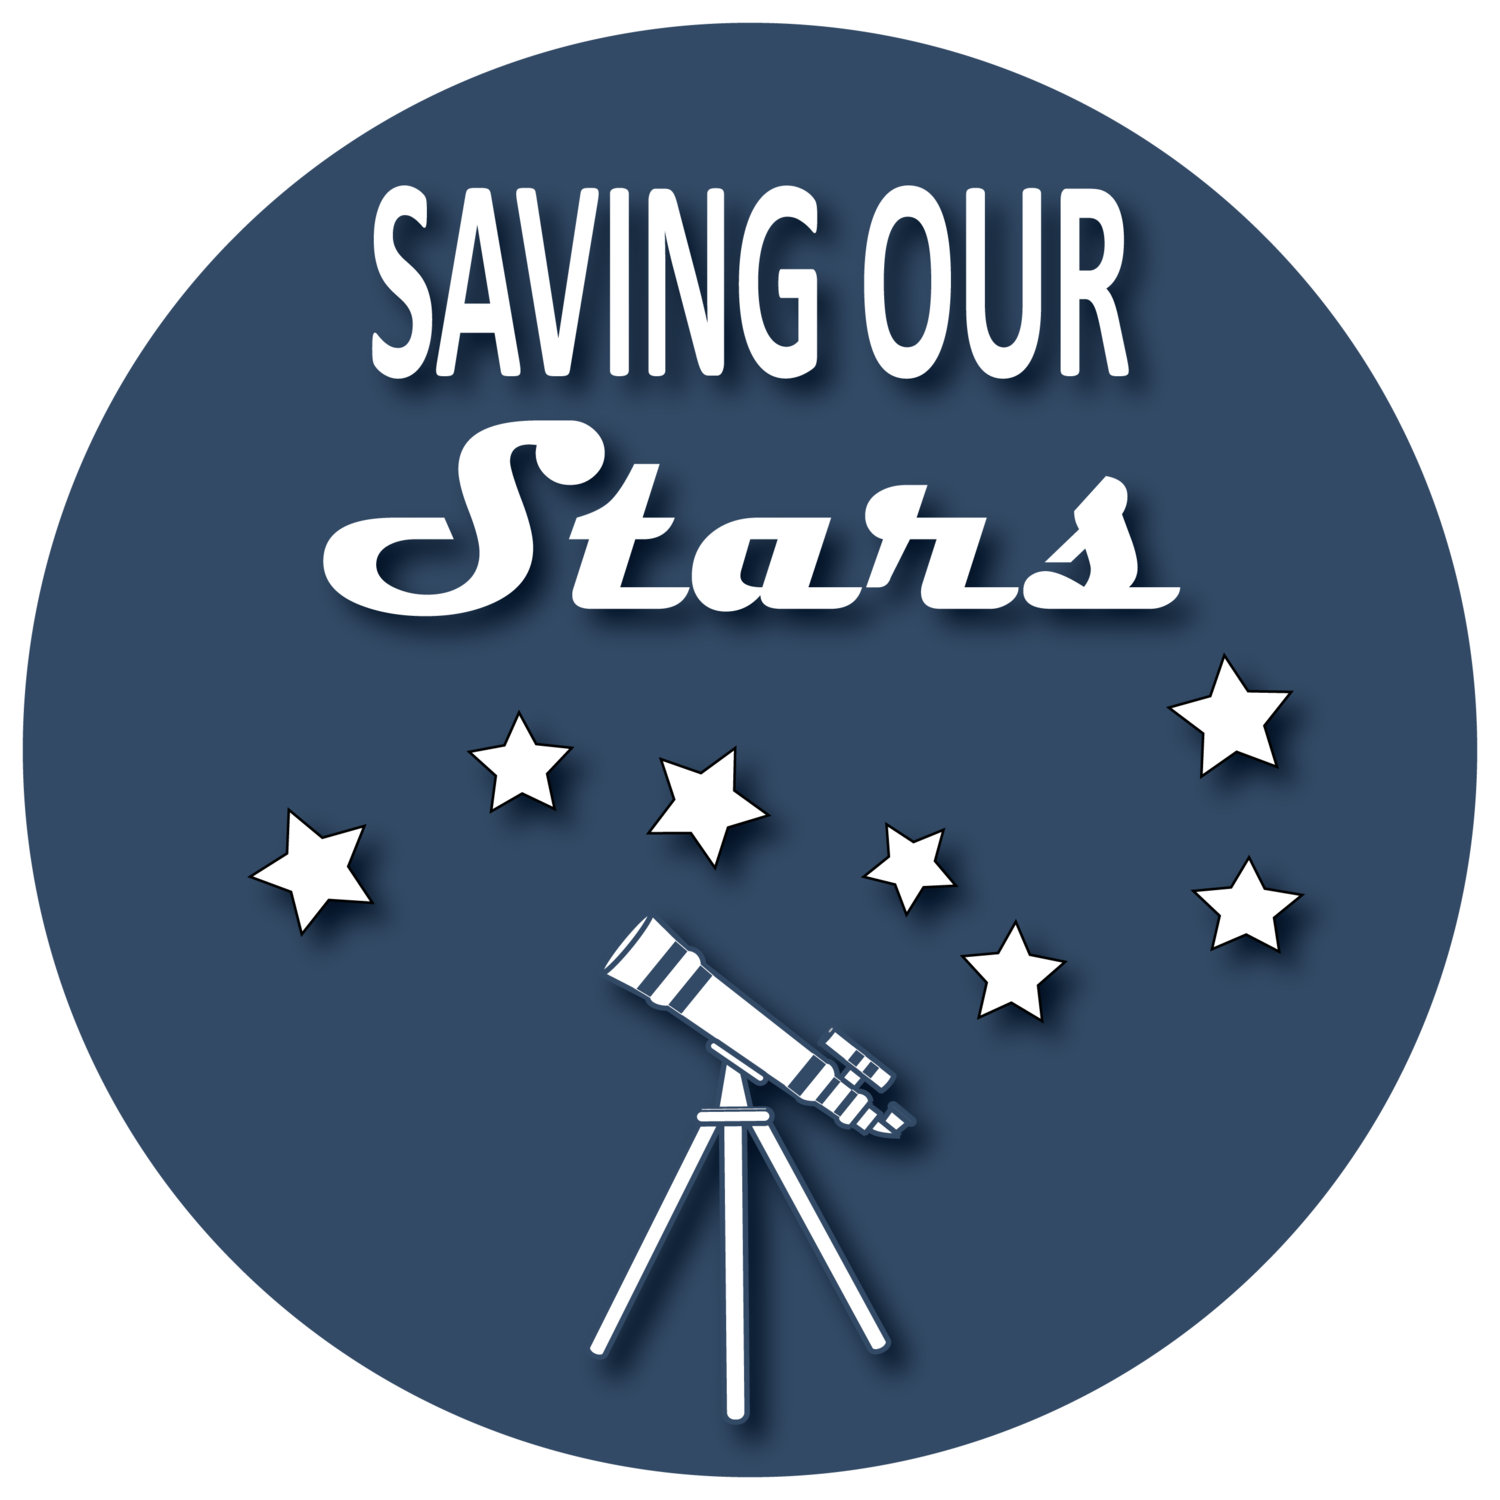 Saving Our Stars